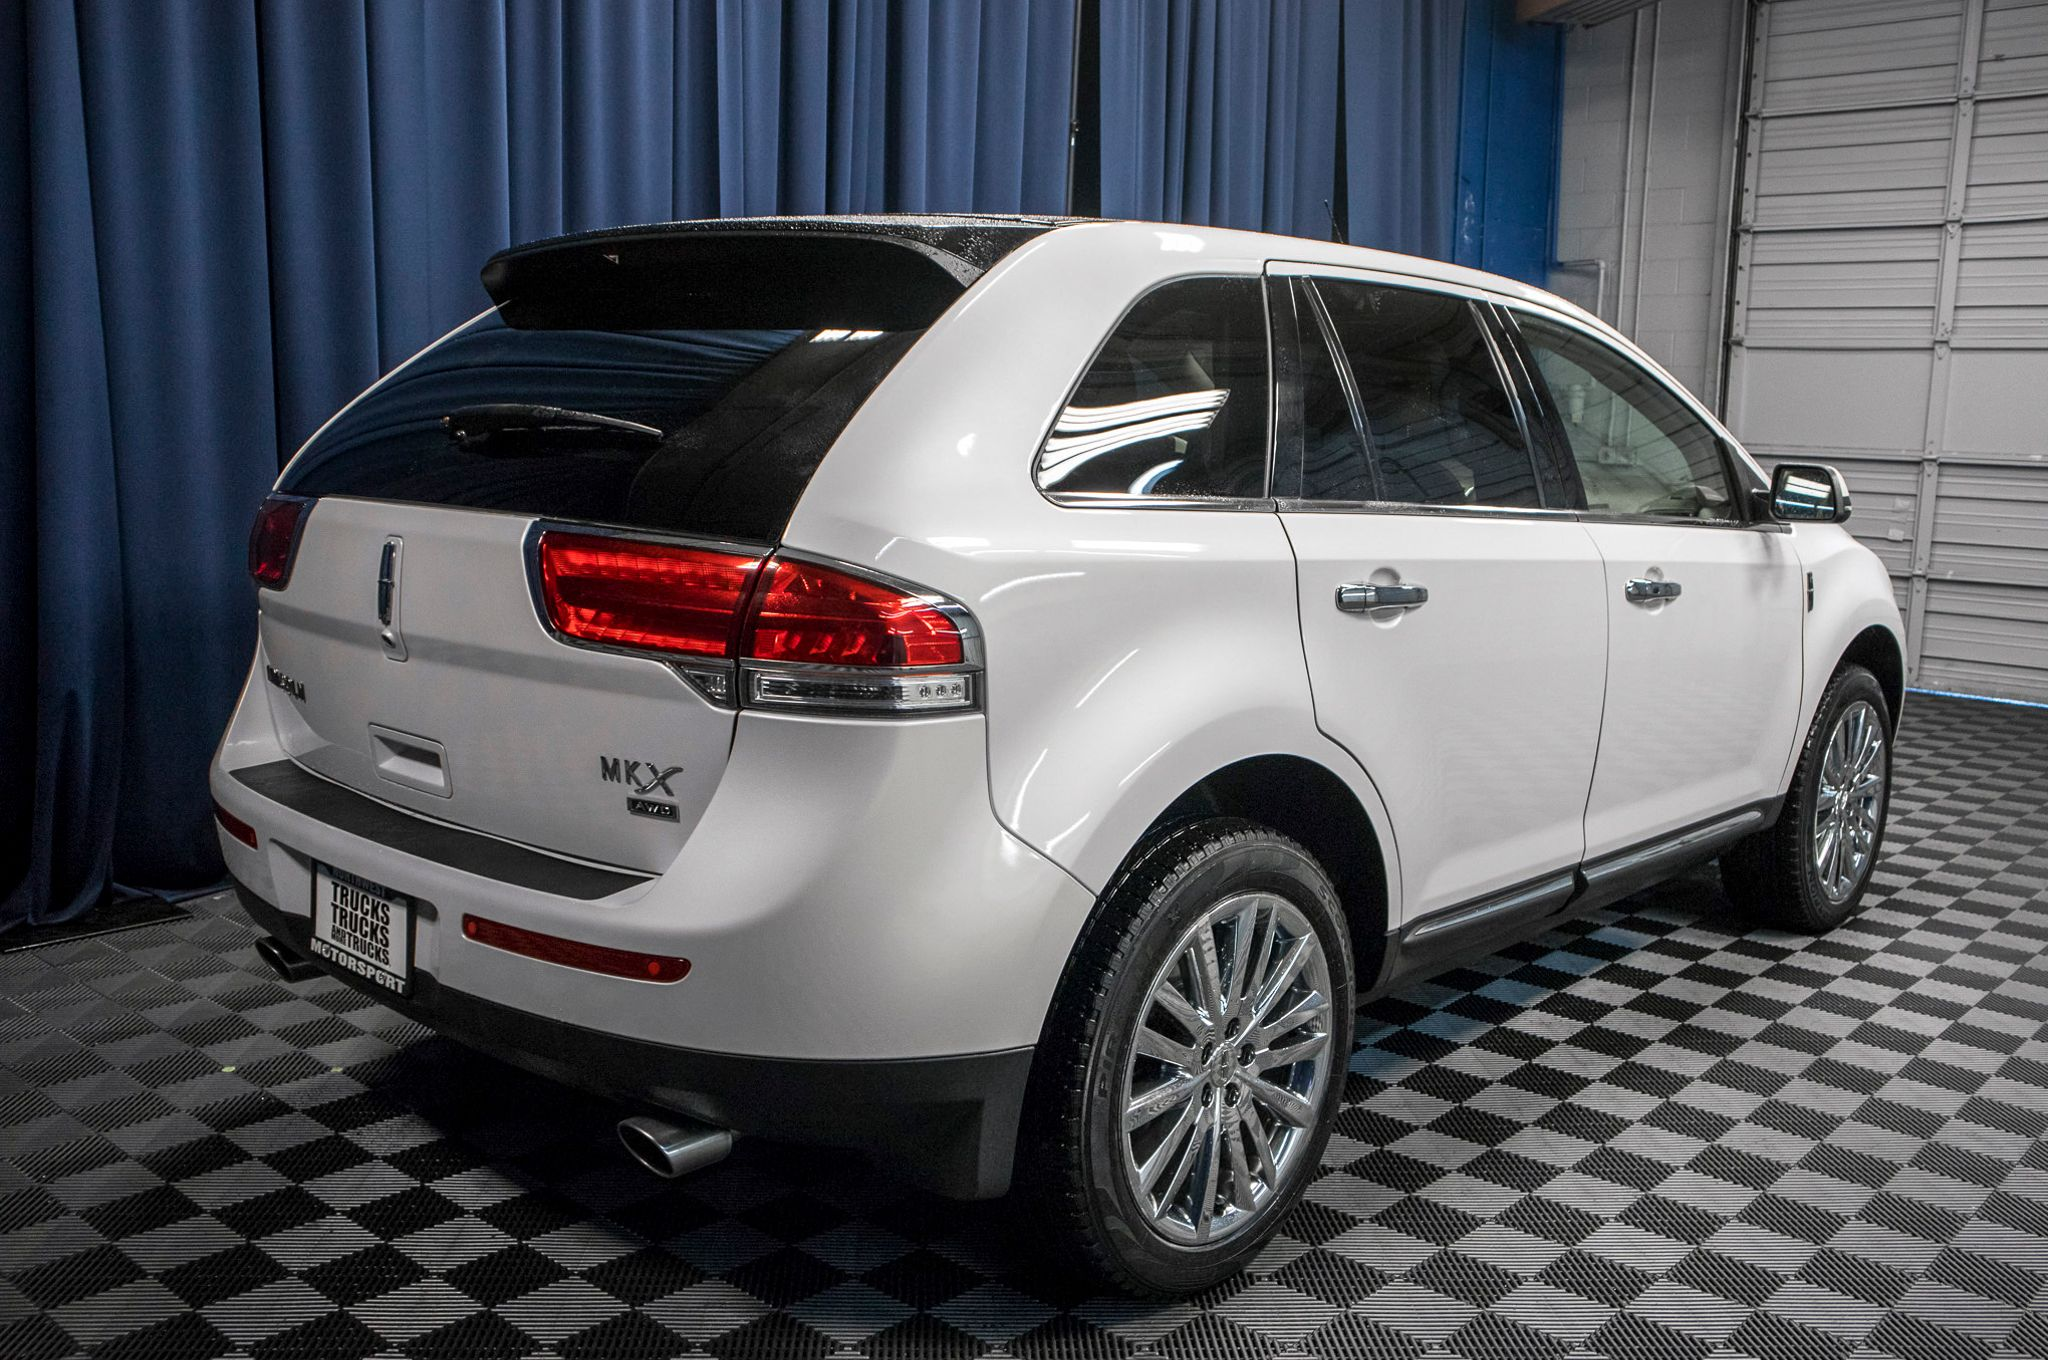 intl lincoln international aaesyrr overview price awd mkx